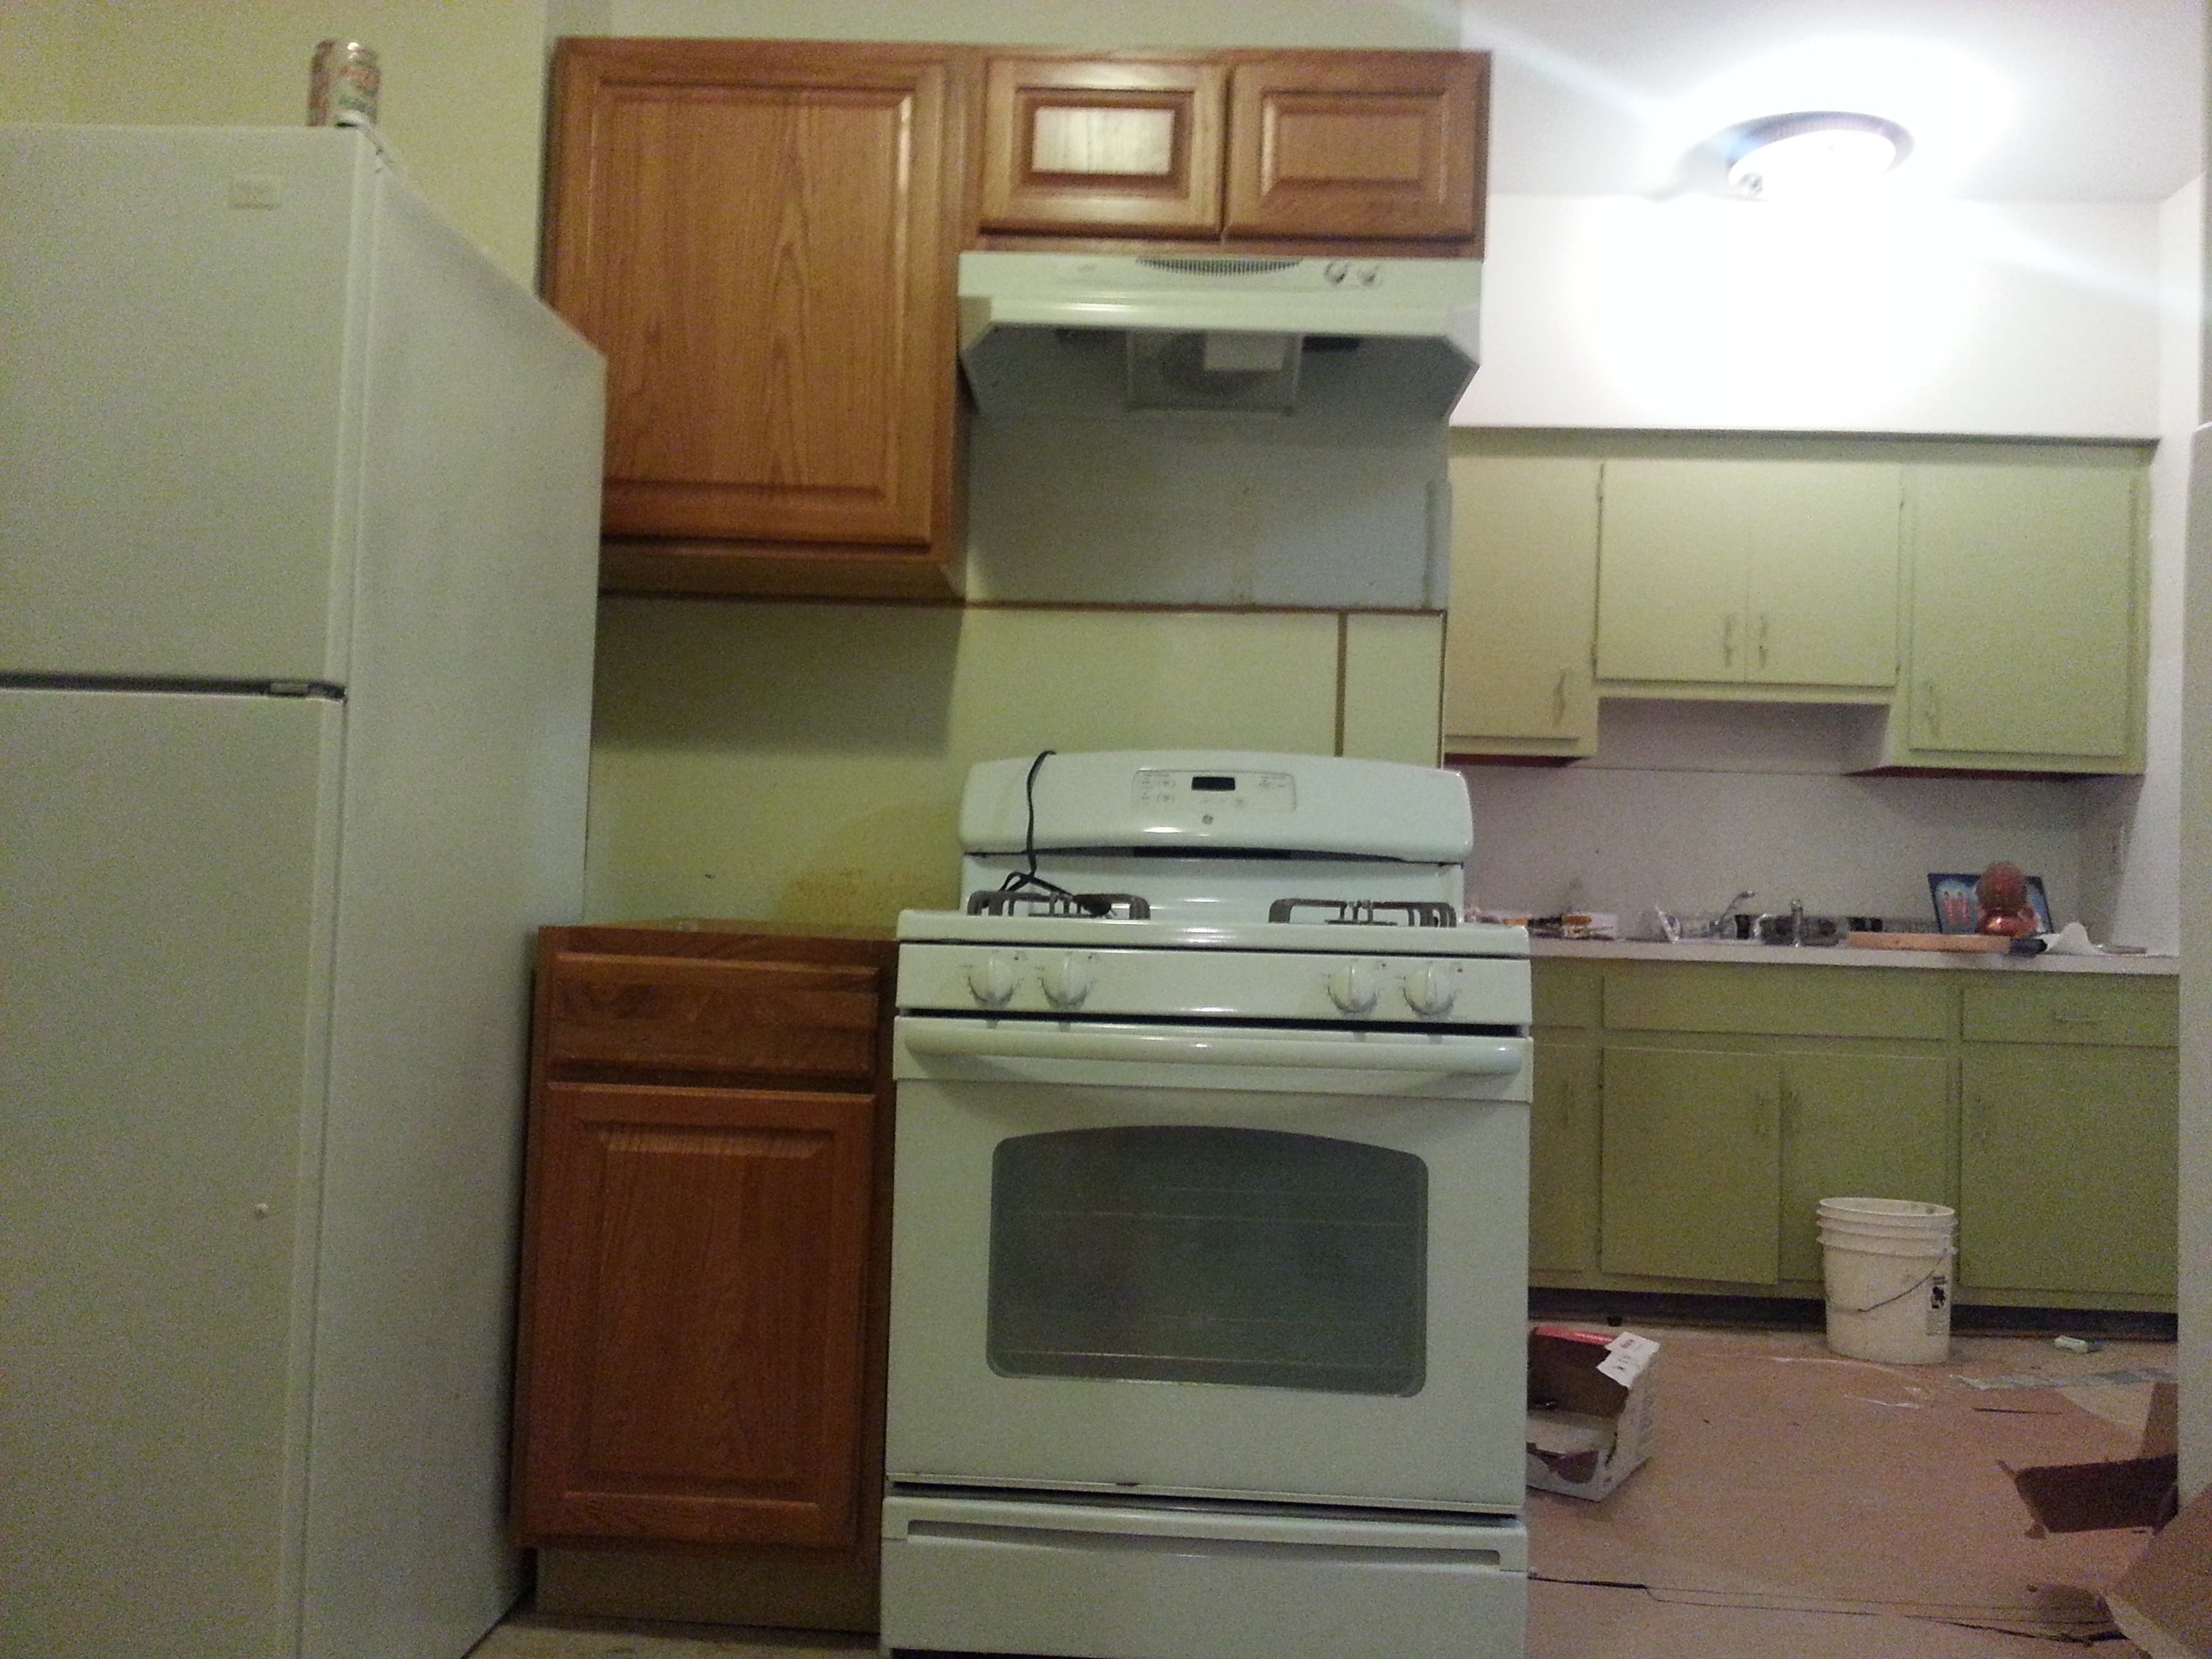 Kitchen Cabinets Jersey City Nj rooms for rent jersey city, nj – apartments, house, commercial